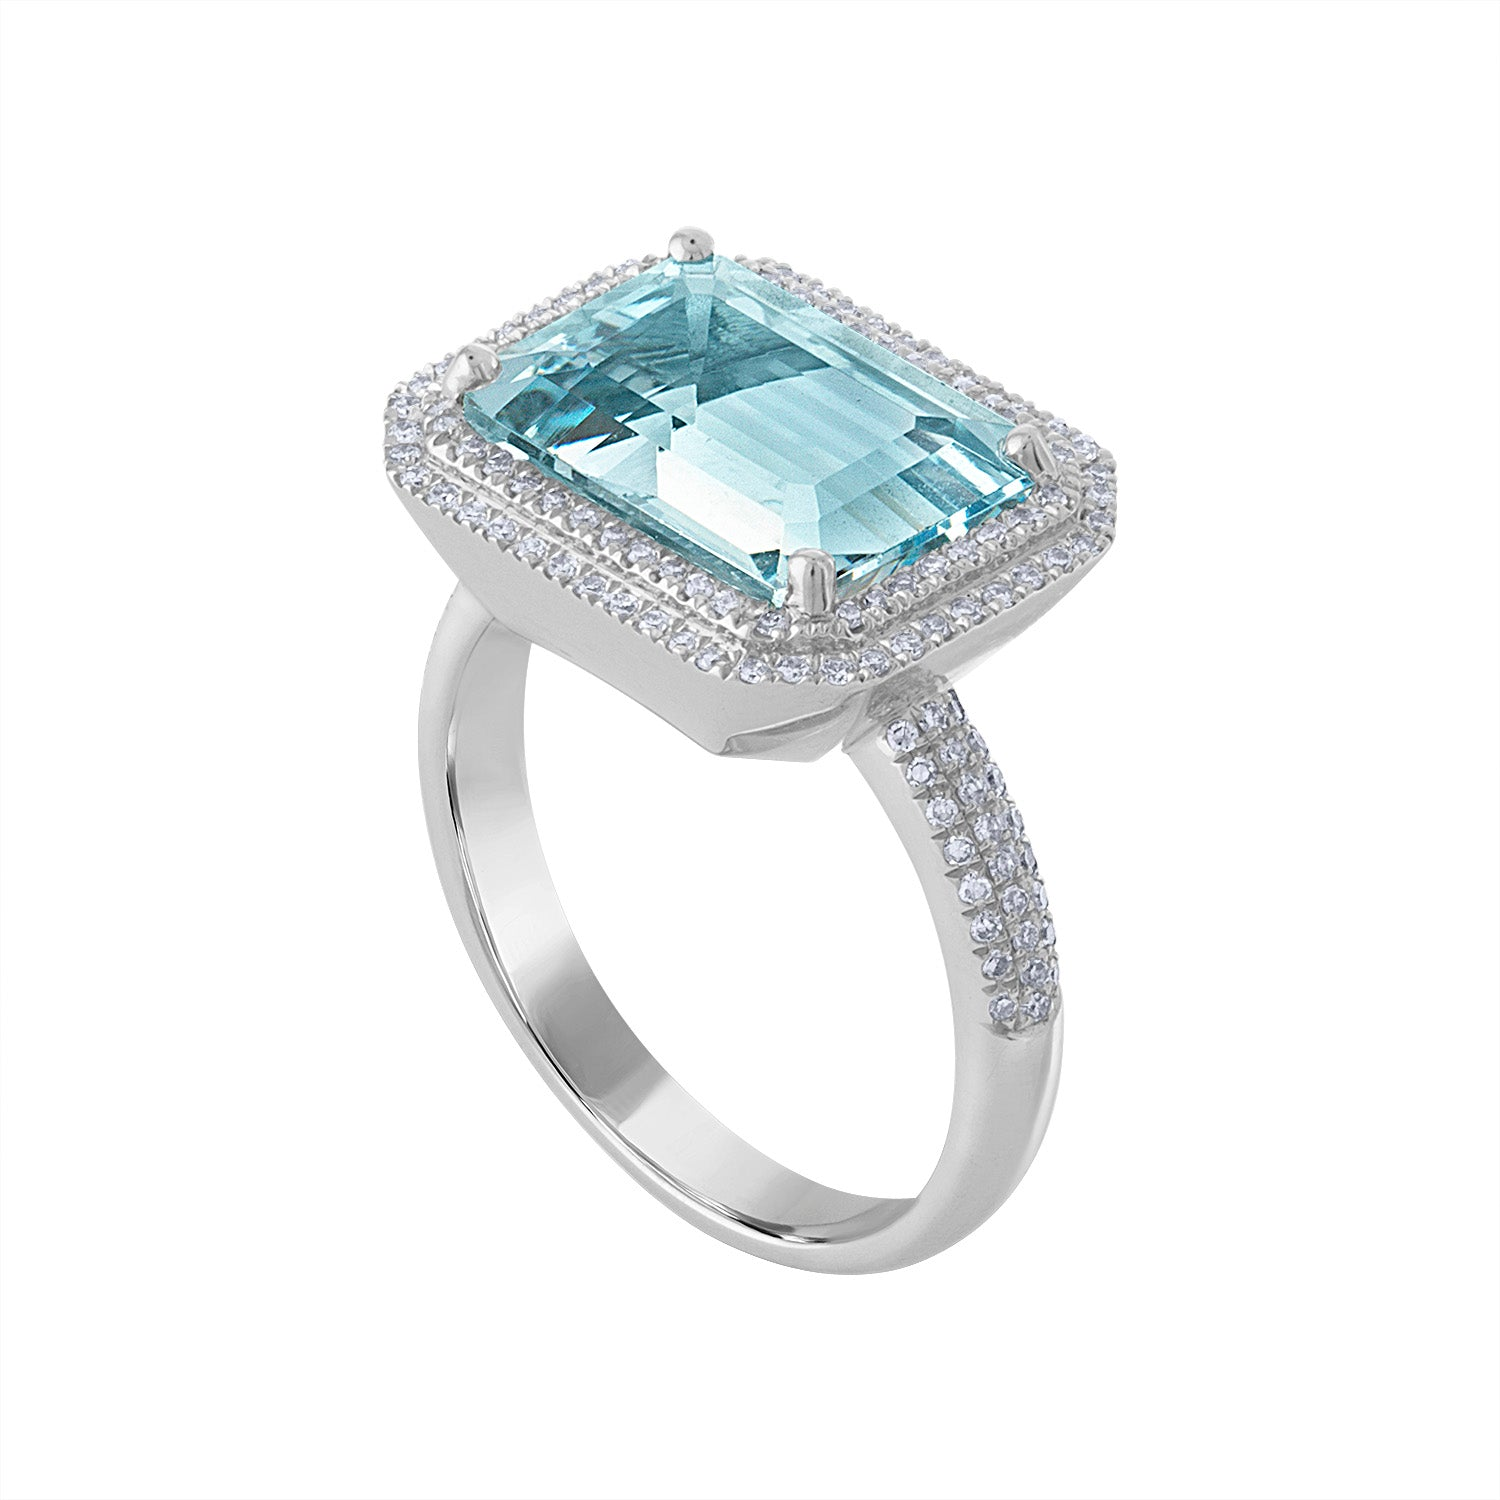 14KT GOLD DIAMOND AND EMERALD CUT AQUAMARINE RING